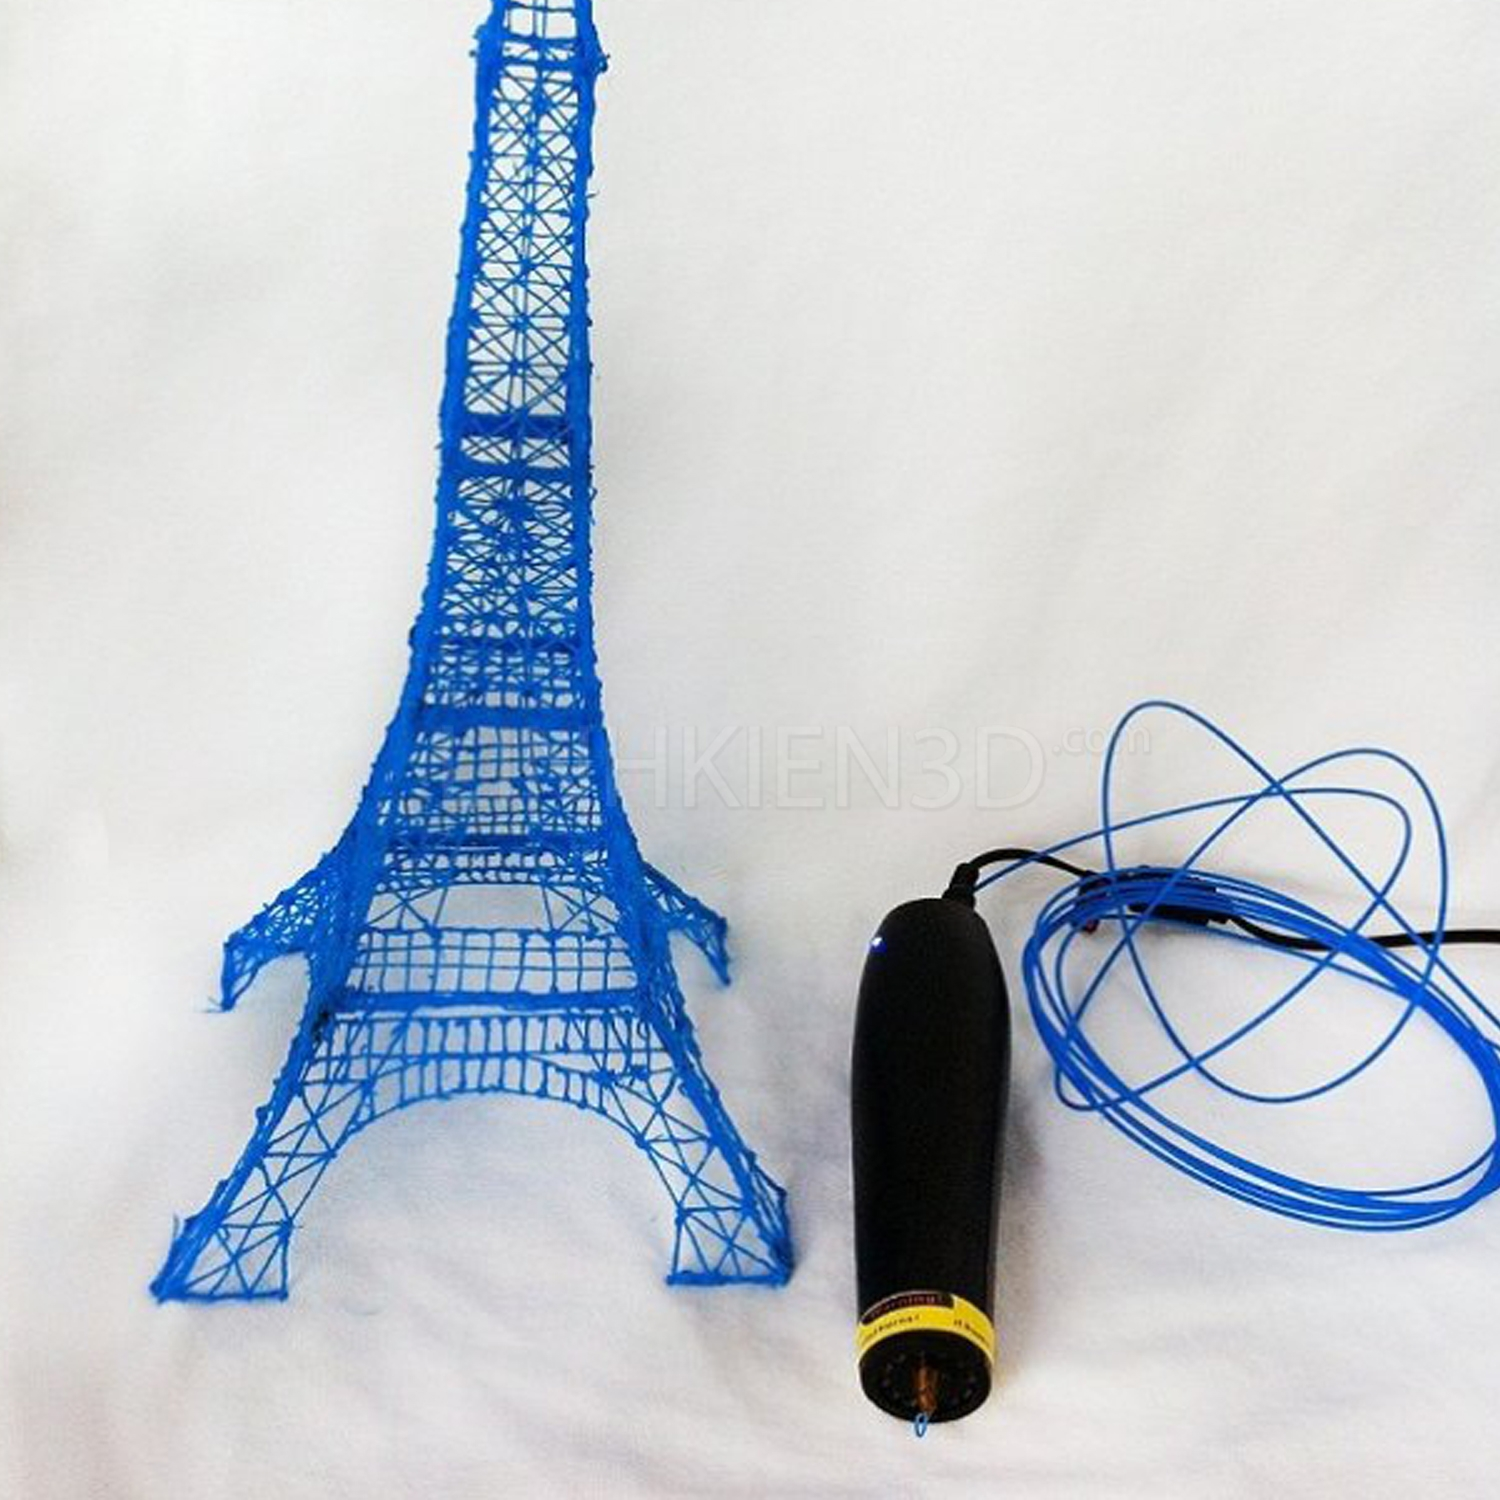 Bút vẽ 3D – 3D Printer Pen